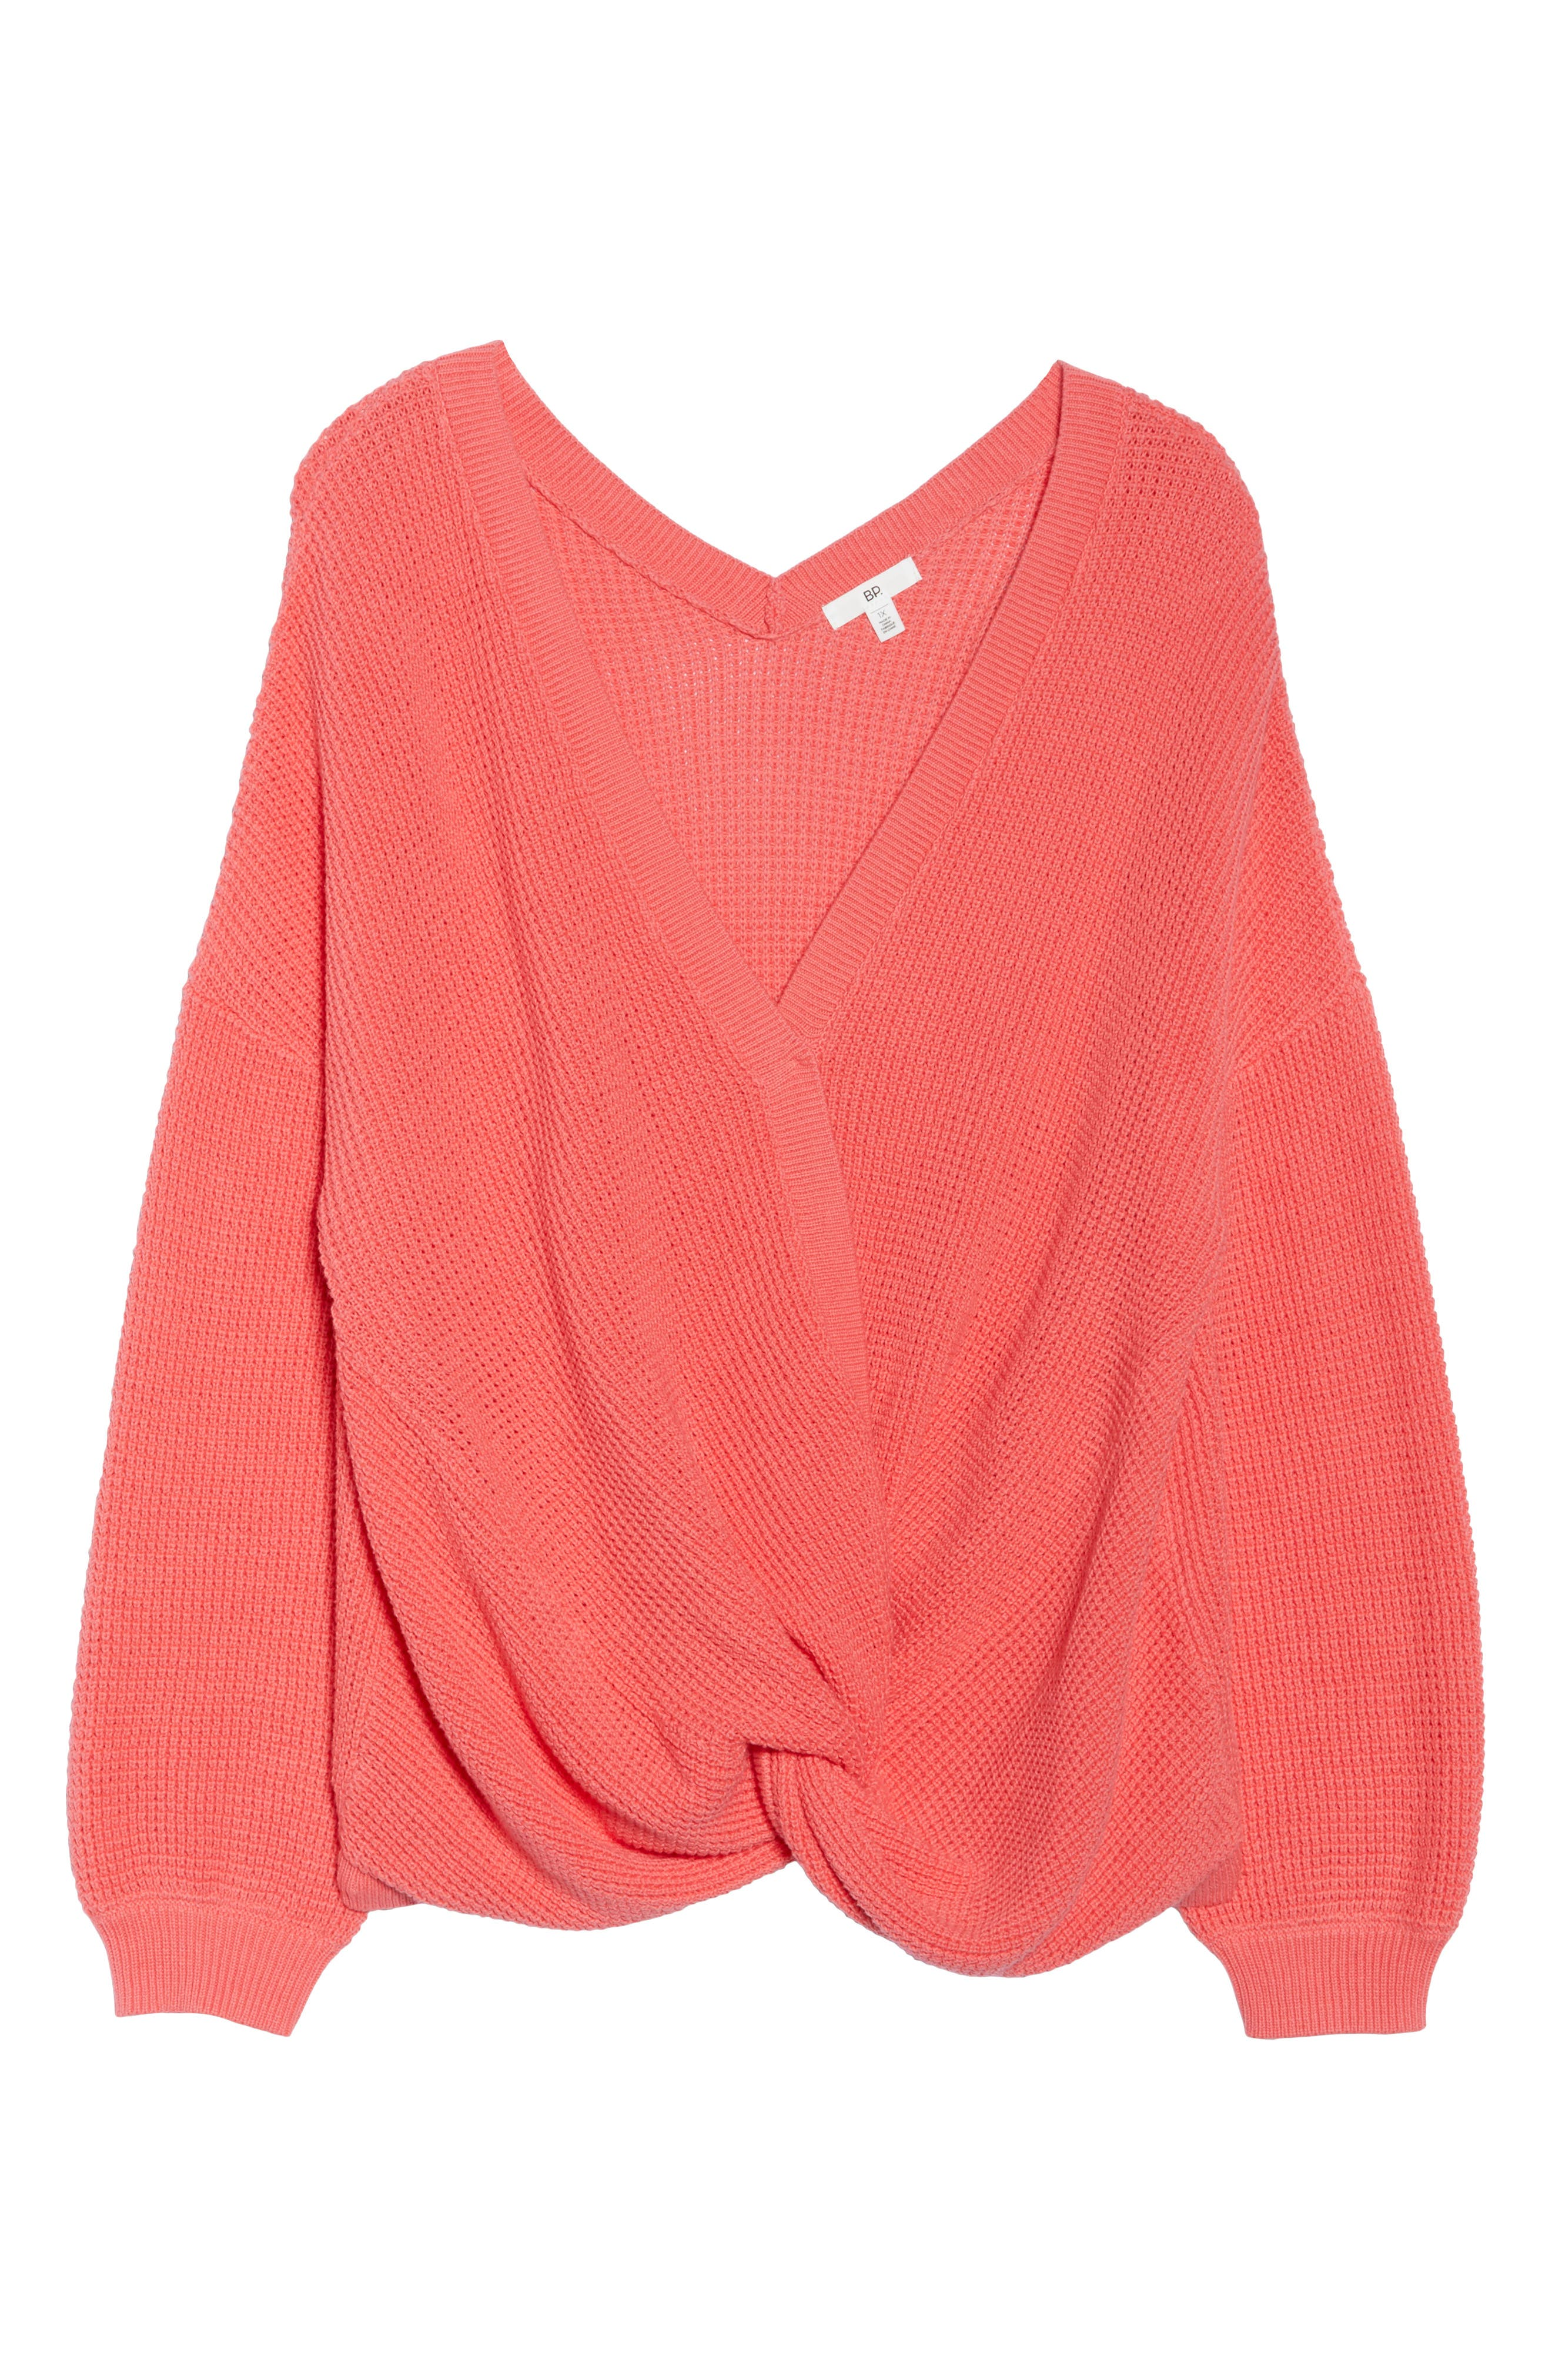 Twist Front Sweater,                             Alternate thumbnail 11, color,                             CORAL SUNKIST